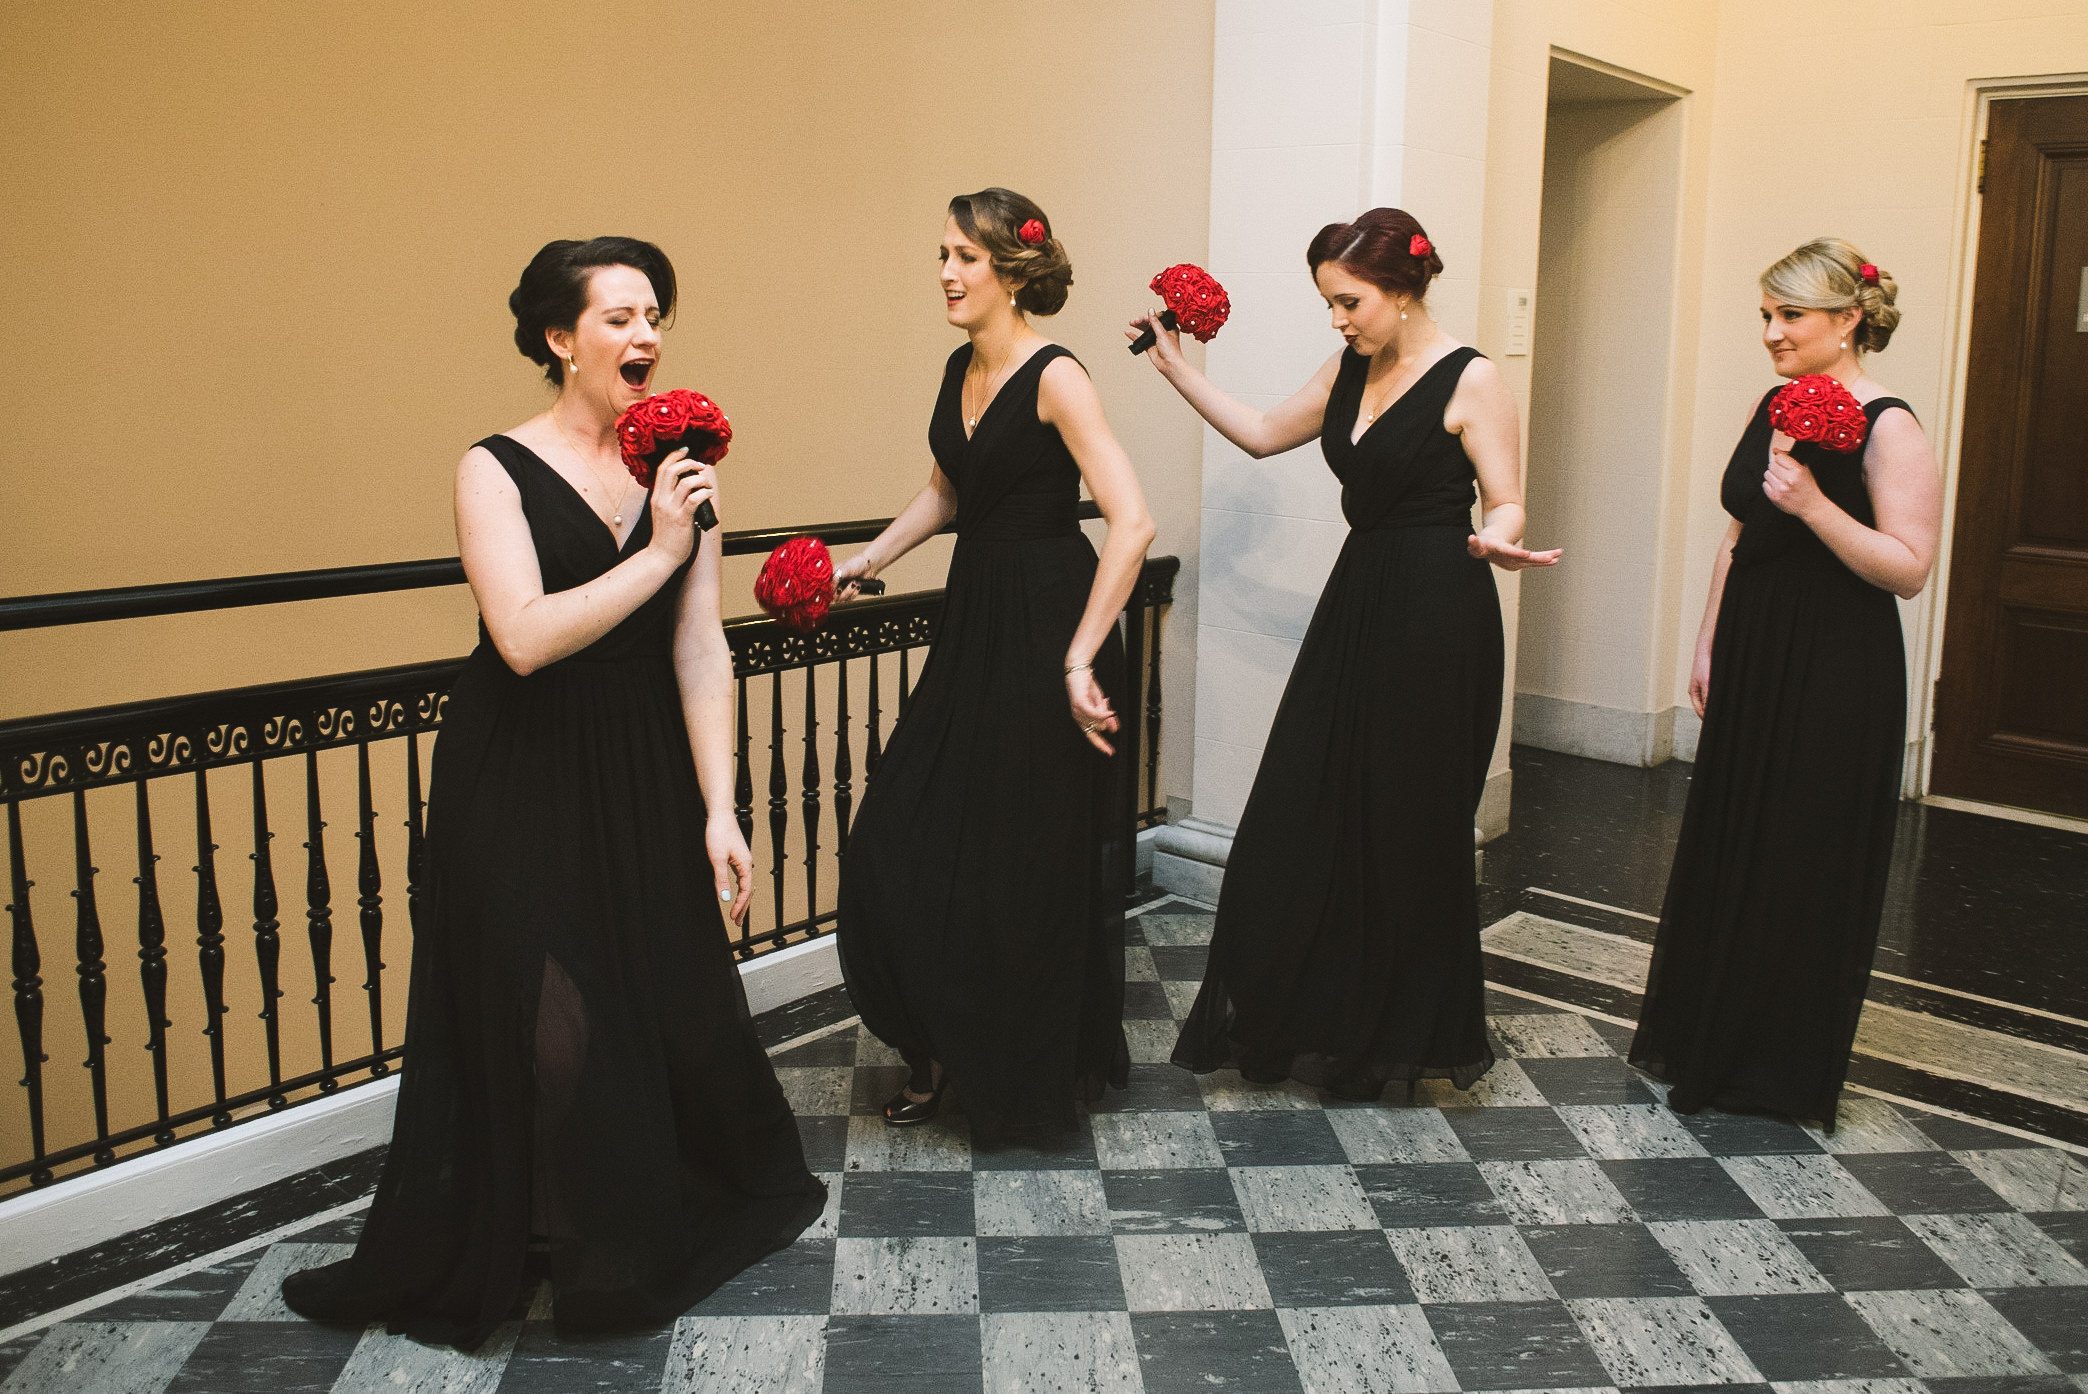 Carnegie Institution for Science Wedding Photographer Mantas Kubilinskas-22.jpg